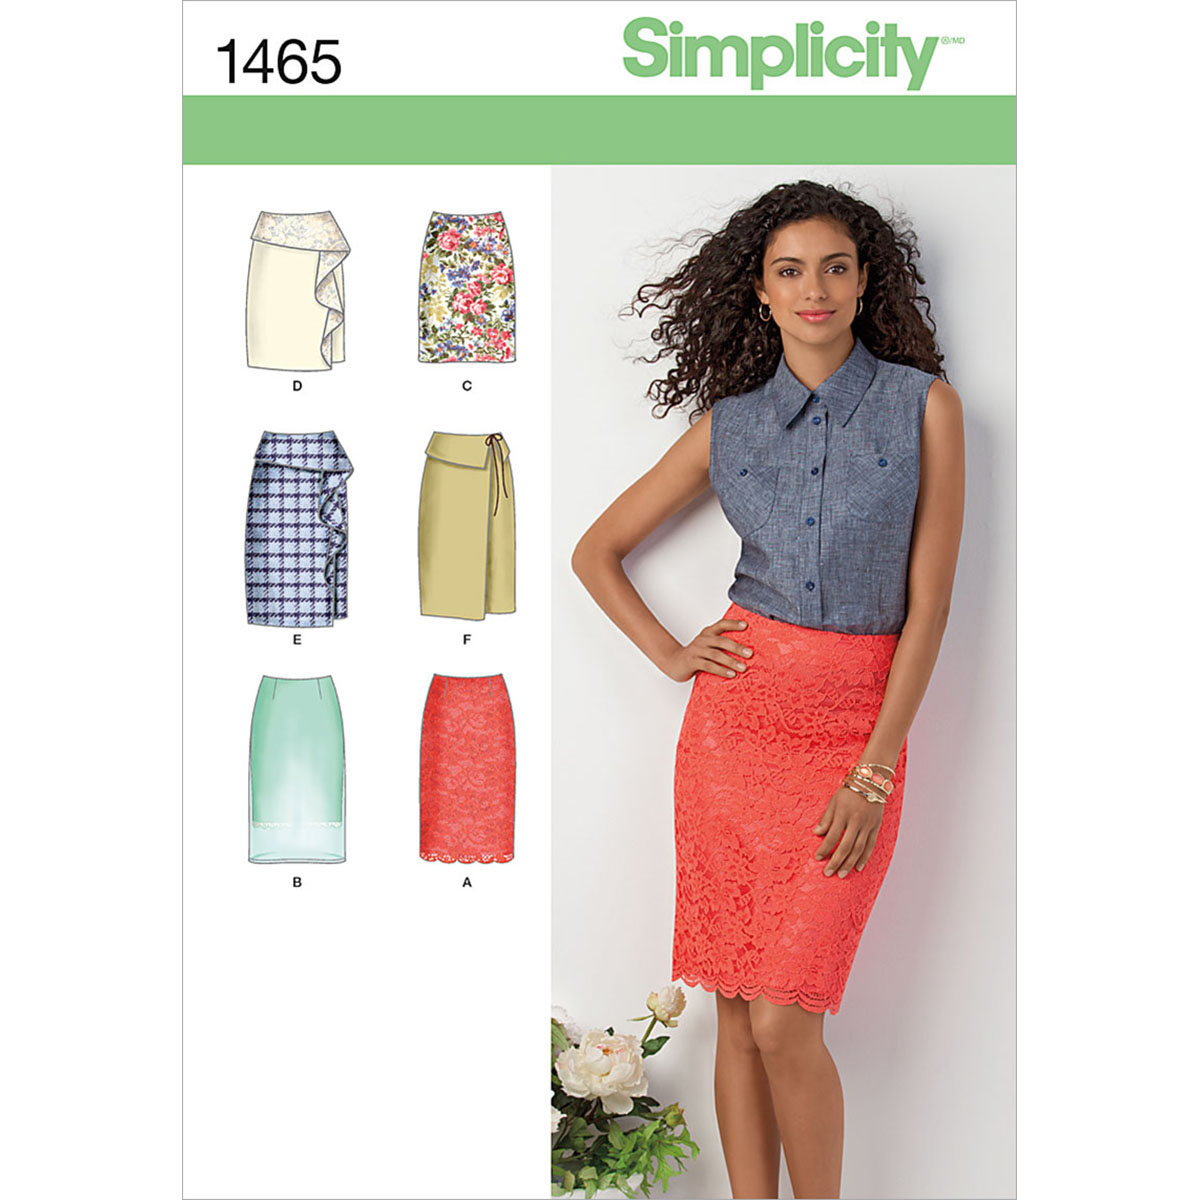 Simplicity Pattern 1465R5 14-16-18-2-Misses Skirts Pants